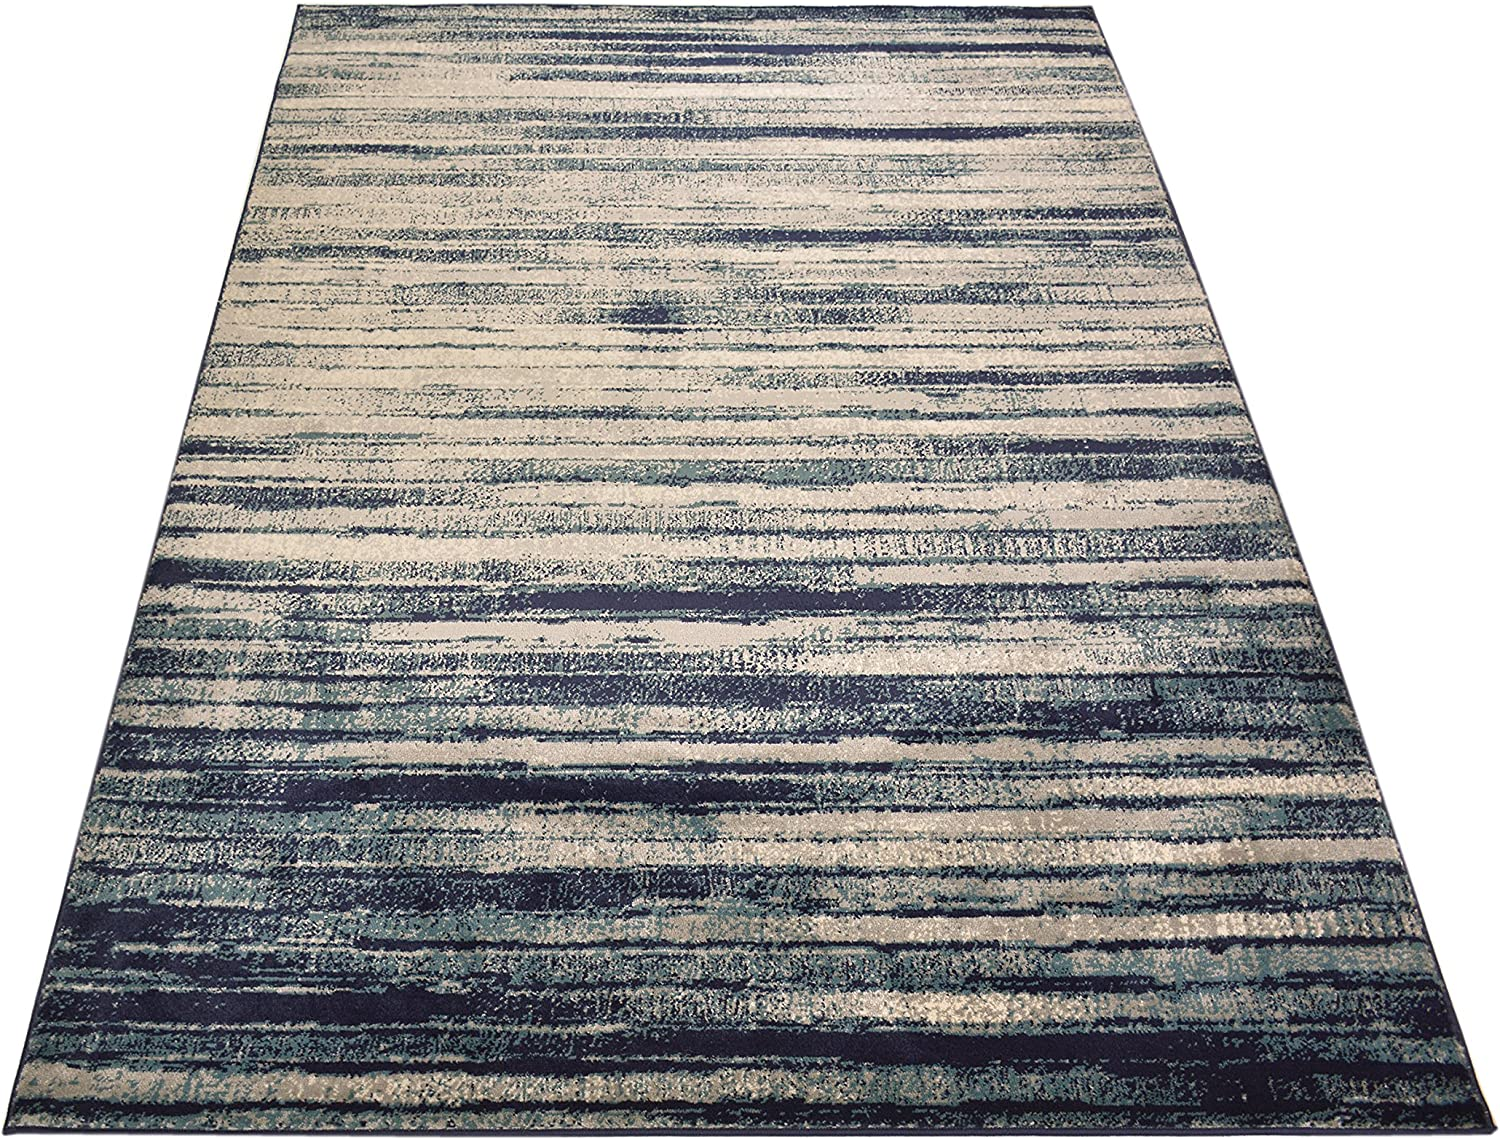 Amazon Com Studio Collection Vintage Distressed Stripes Abstract Design Contemporary Modern Area Rug Rugs 3 Options Stripes Navy Blue 8 X 10 Home Kitchen